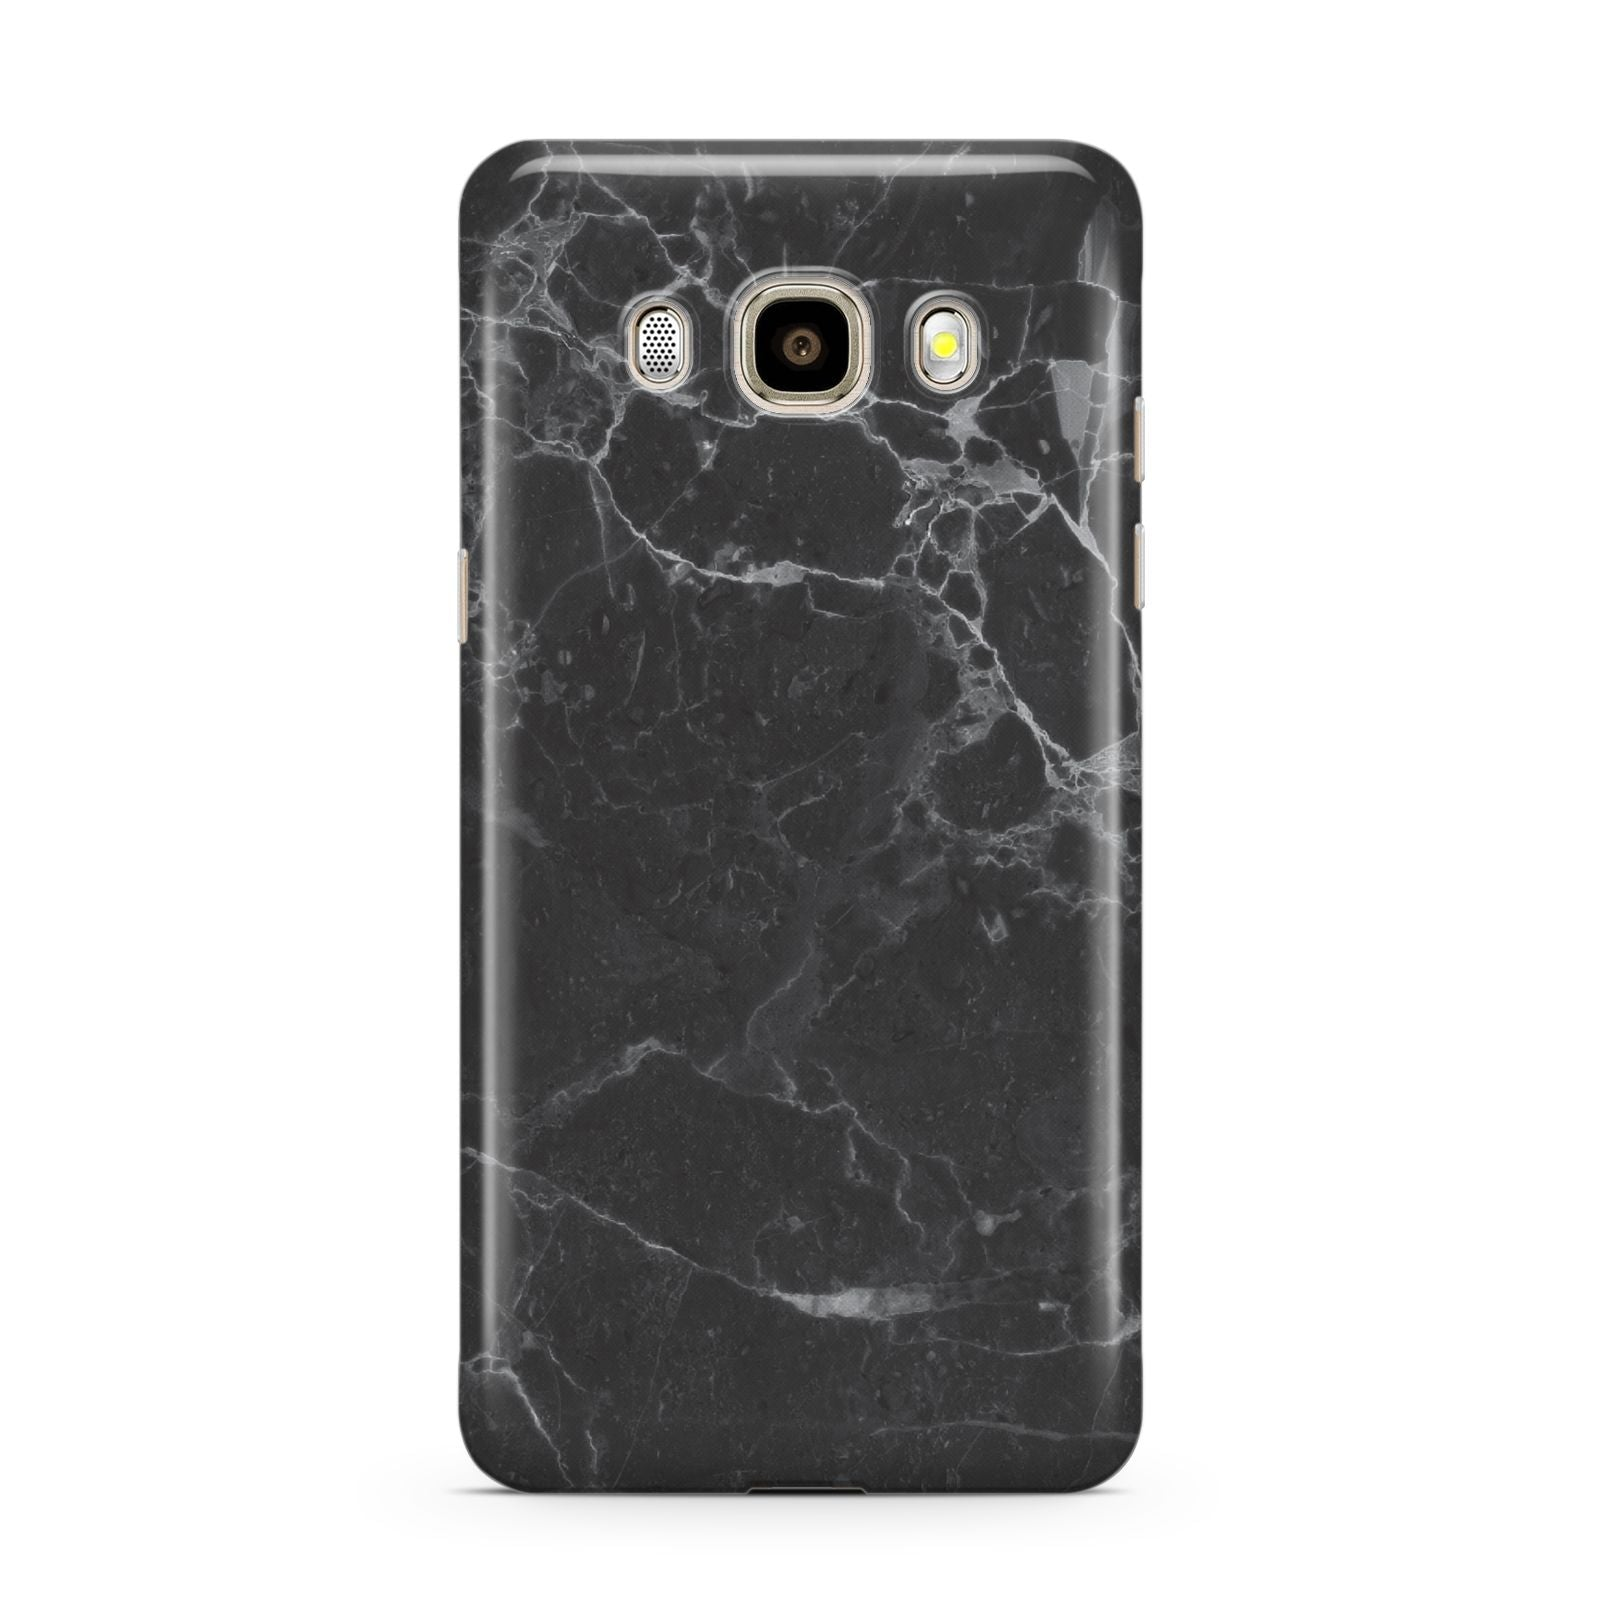 Faux Marble Effect Black Samsung Galaxy J7 2016 Case on gold phone